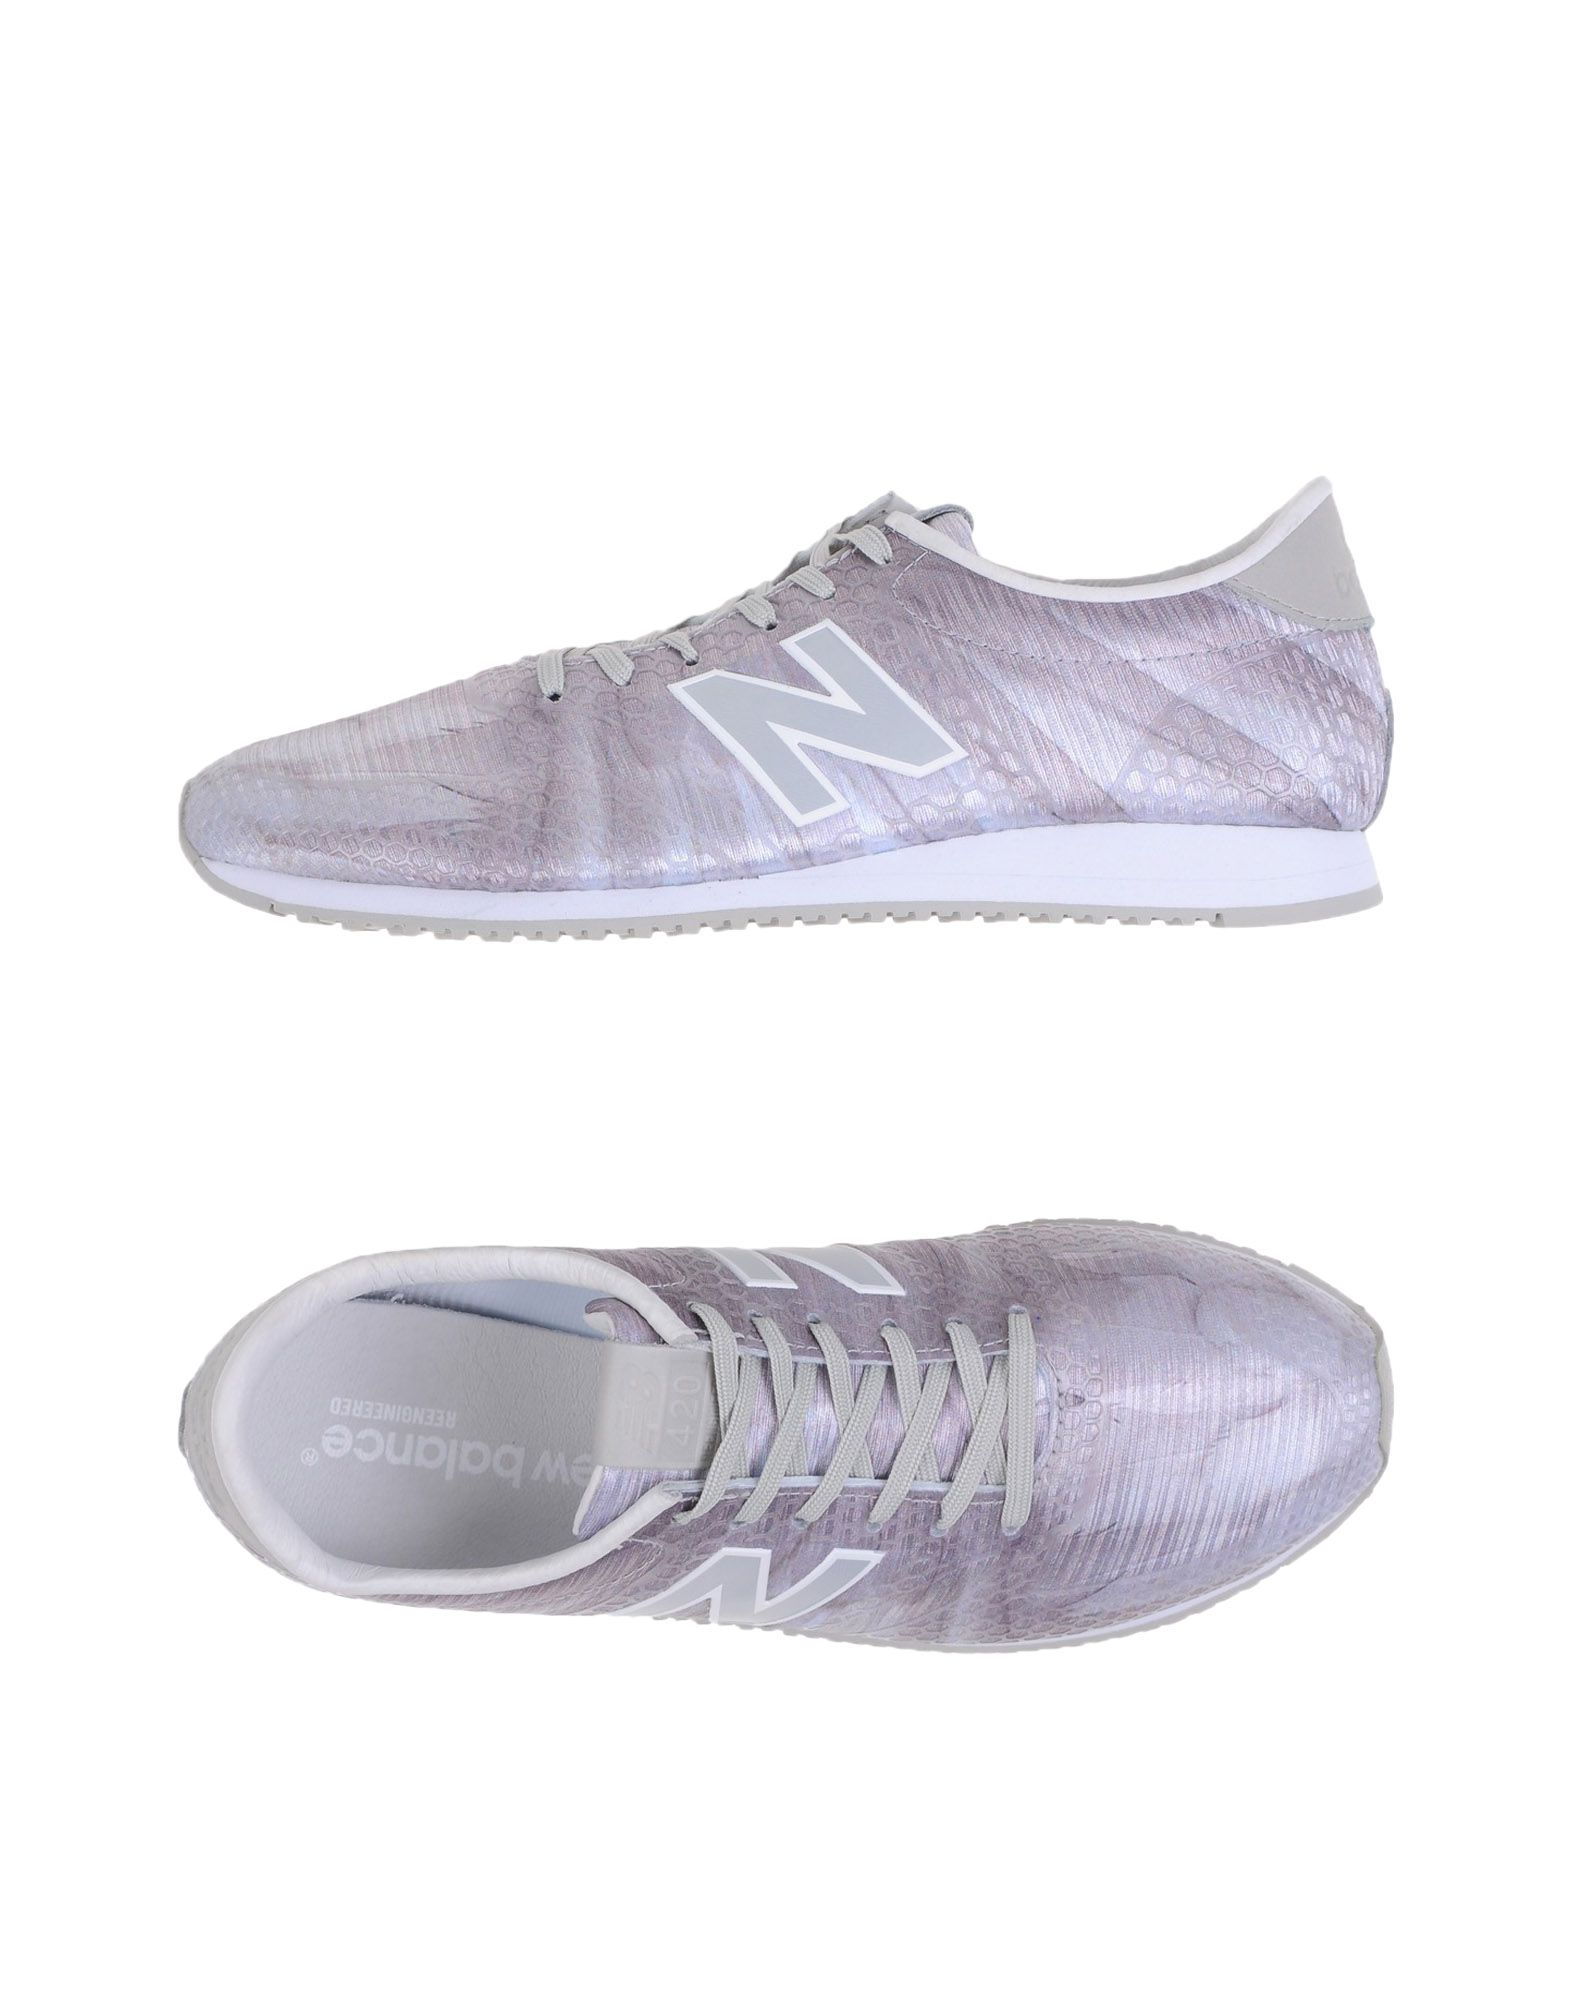 Sneakers New Balance 420 Printed Upper - Femme - Sneakers New Balance sur